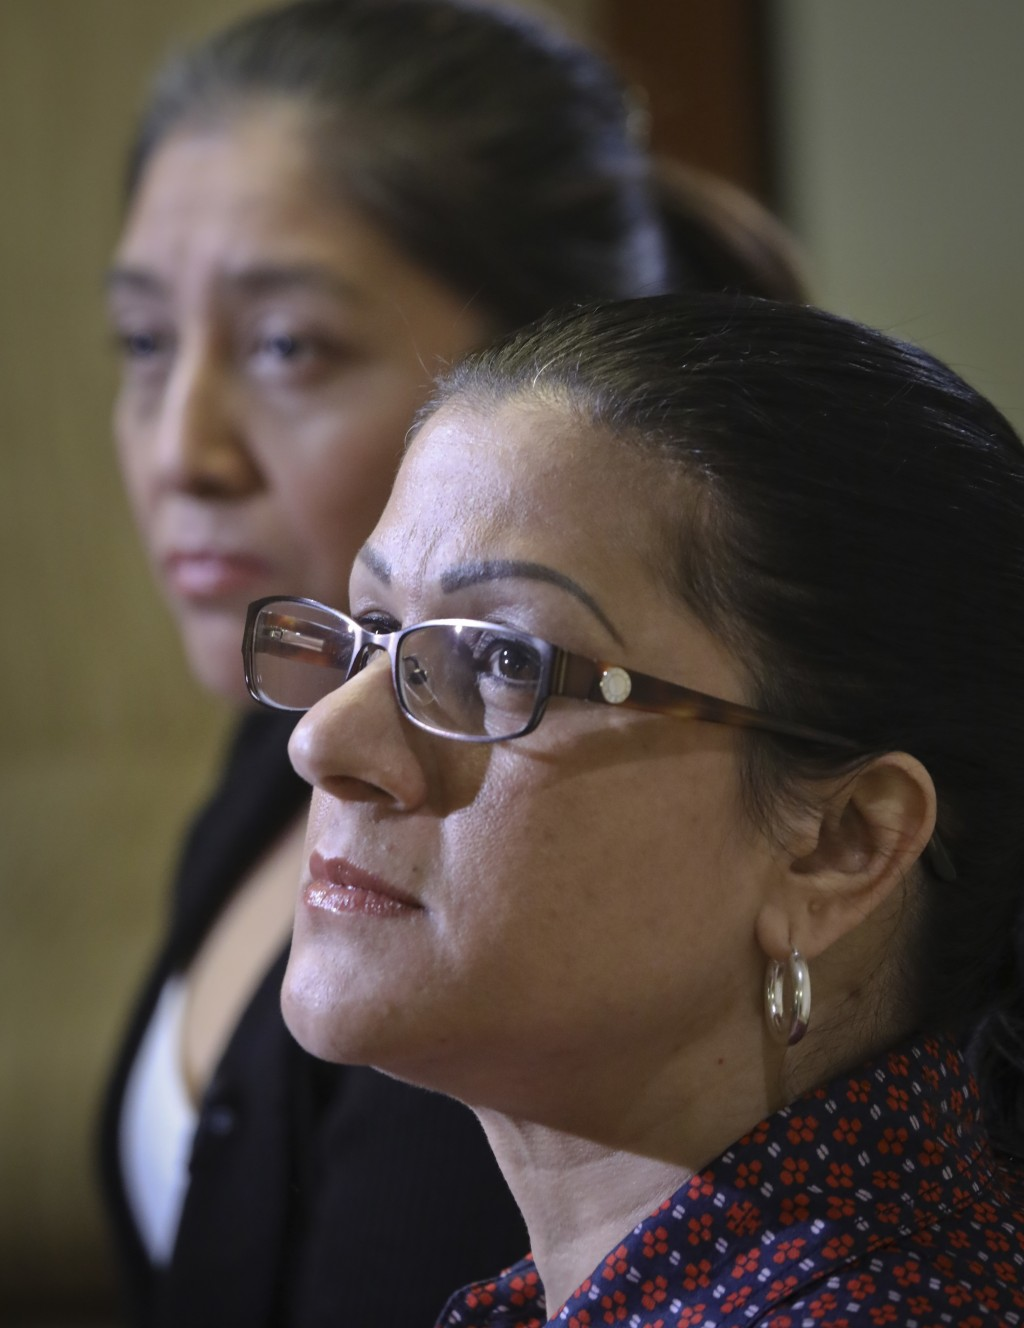 Victorina Morales, left, and Sandra Diaz, right, listen during an interview where they recalled their experience working at President Donald Trump's g